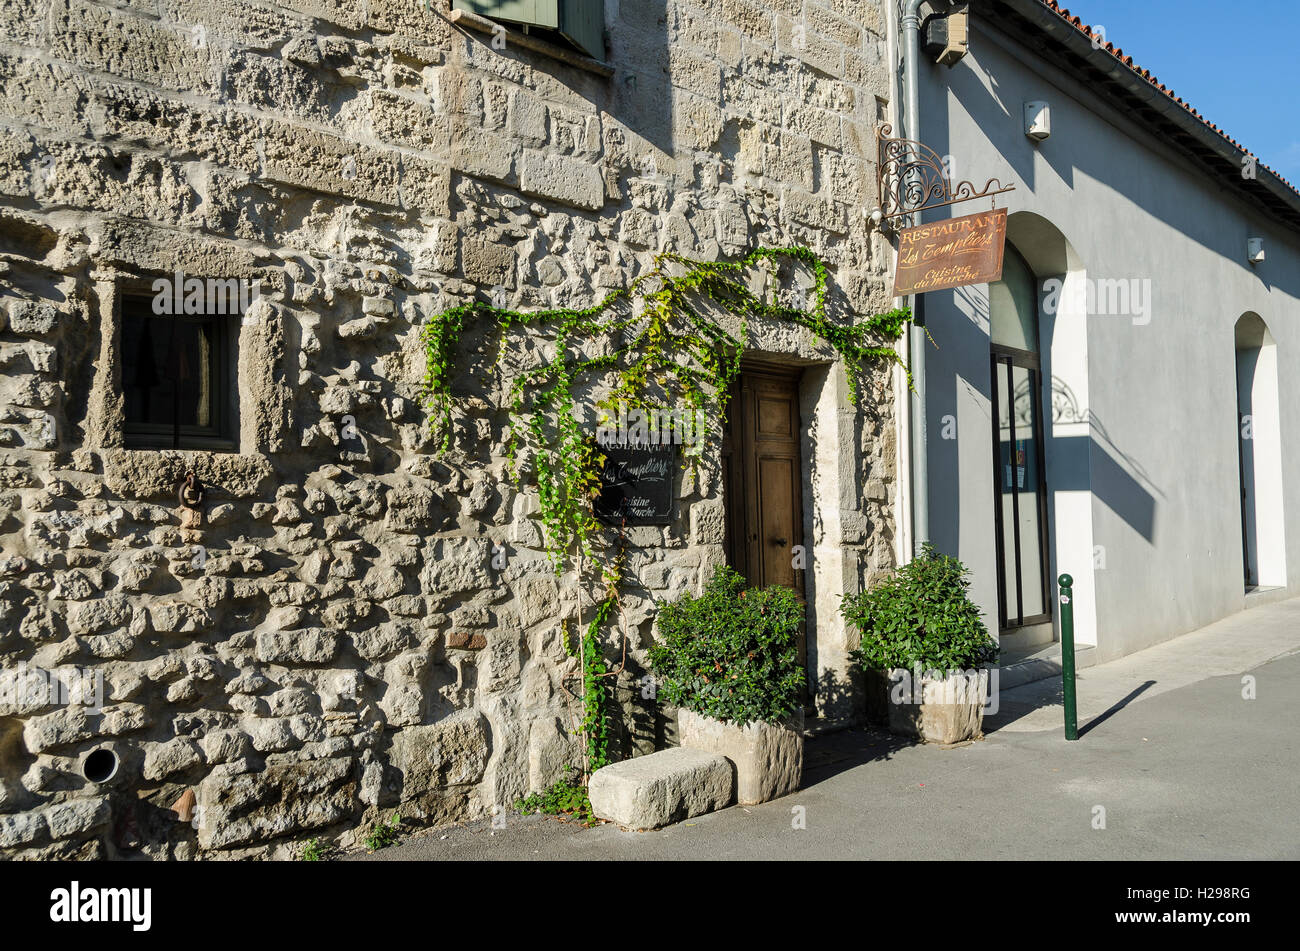 Restaurant, Aigues Mortes, Gard, Provence, France - Stock Image